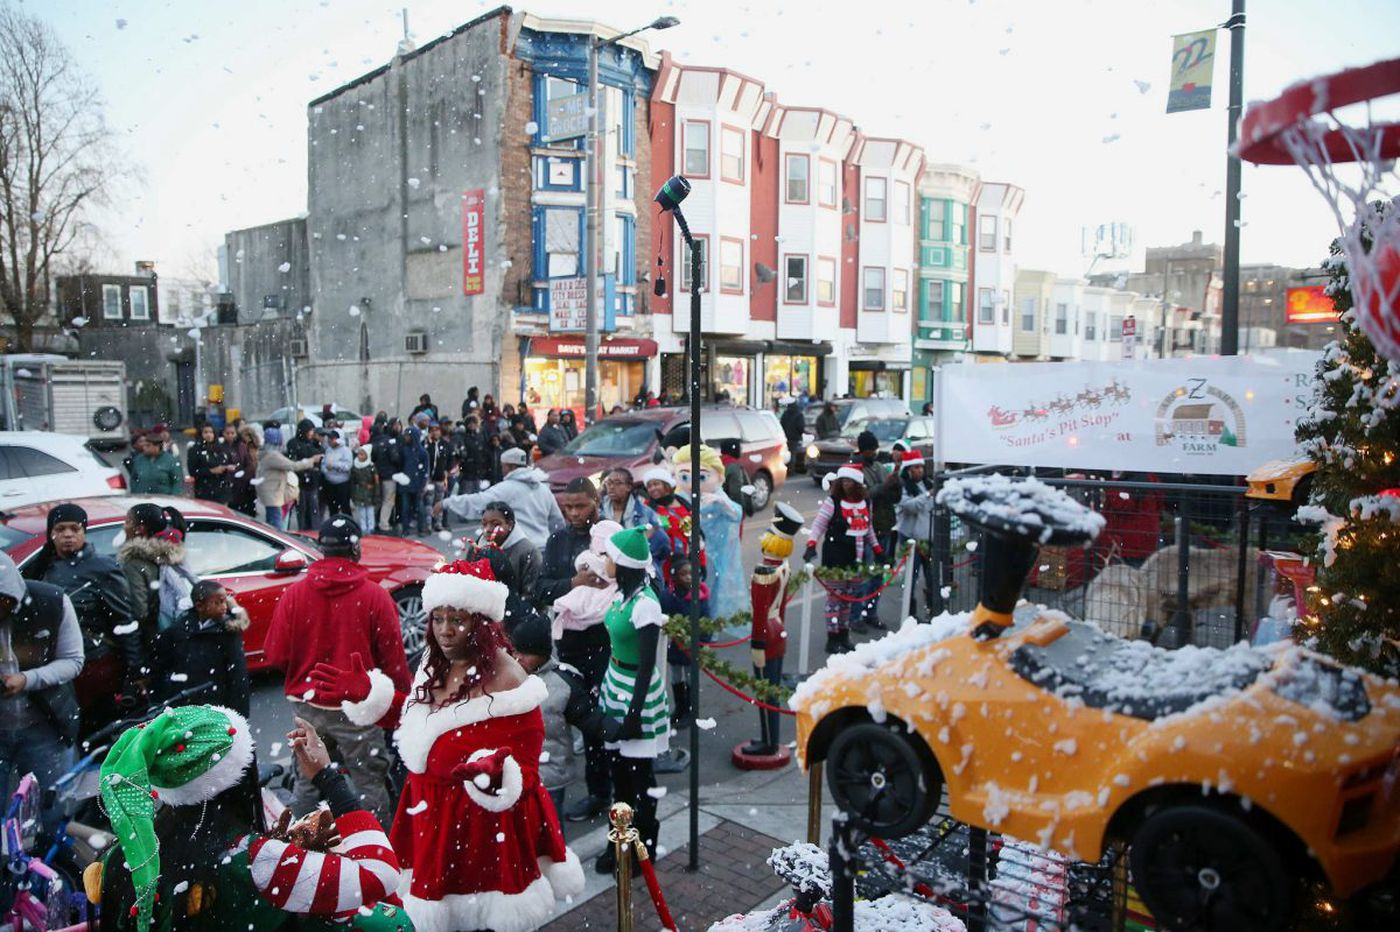 Camel prom mom hosts epic Christmas toy giveaway in North Philly